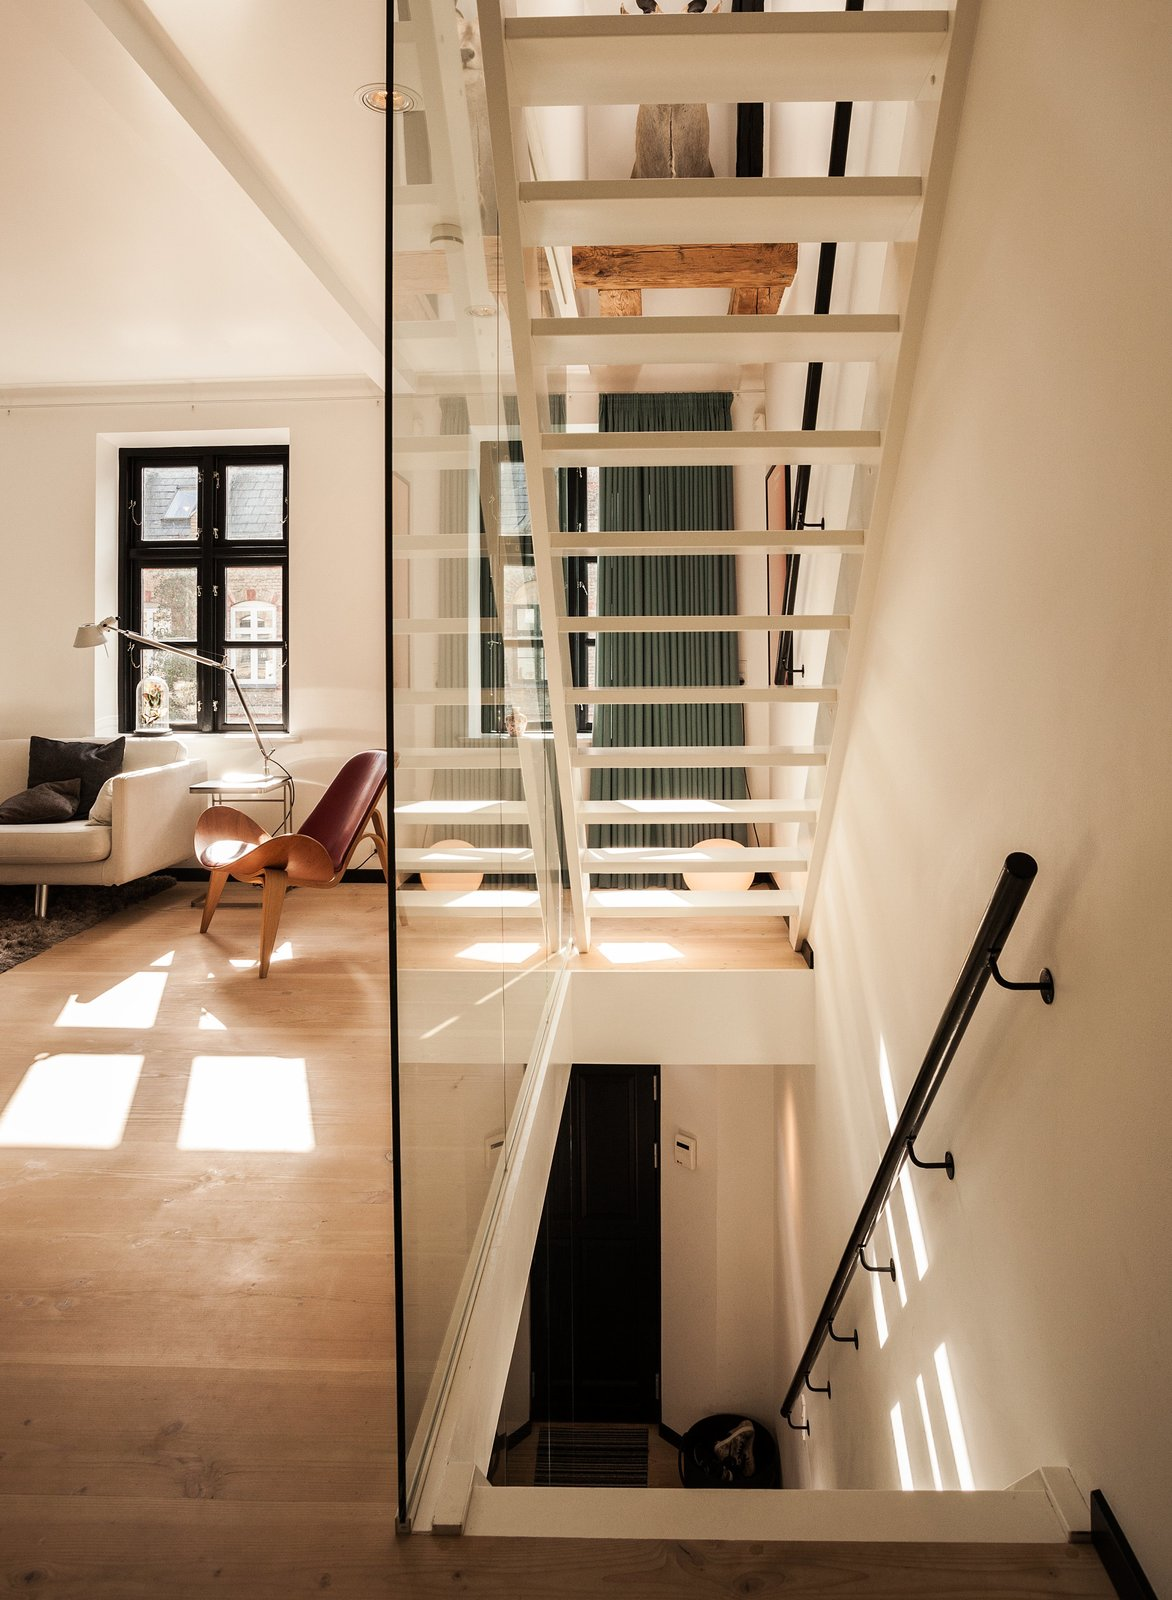 """""""From the day we got our house, I knew exactly how I wanted it done,"""" says Mia Dalgas, who led the renovation of her family's 1880s home in Copenhagen's Potato Rows district. One of the biggest transformations was the addition of a glass-enclosed lacquered wood staircase.  Photo 2 of 8 in Urban Renewal"""